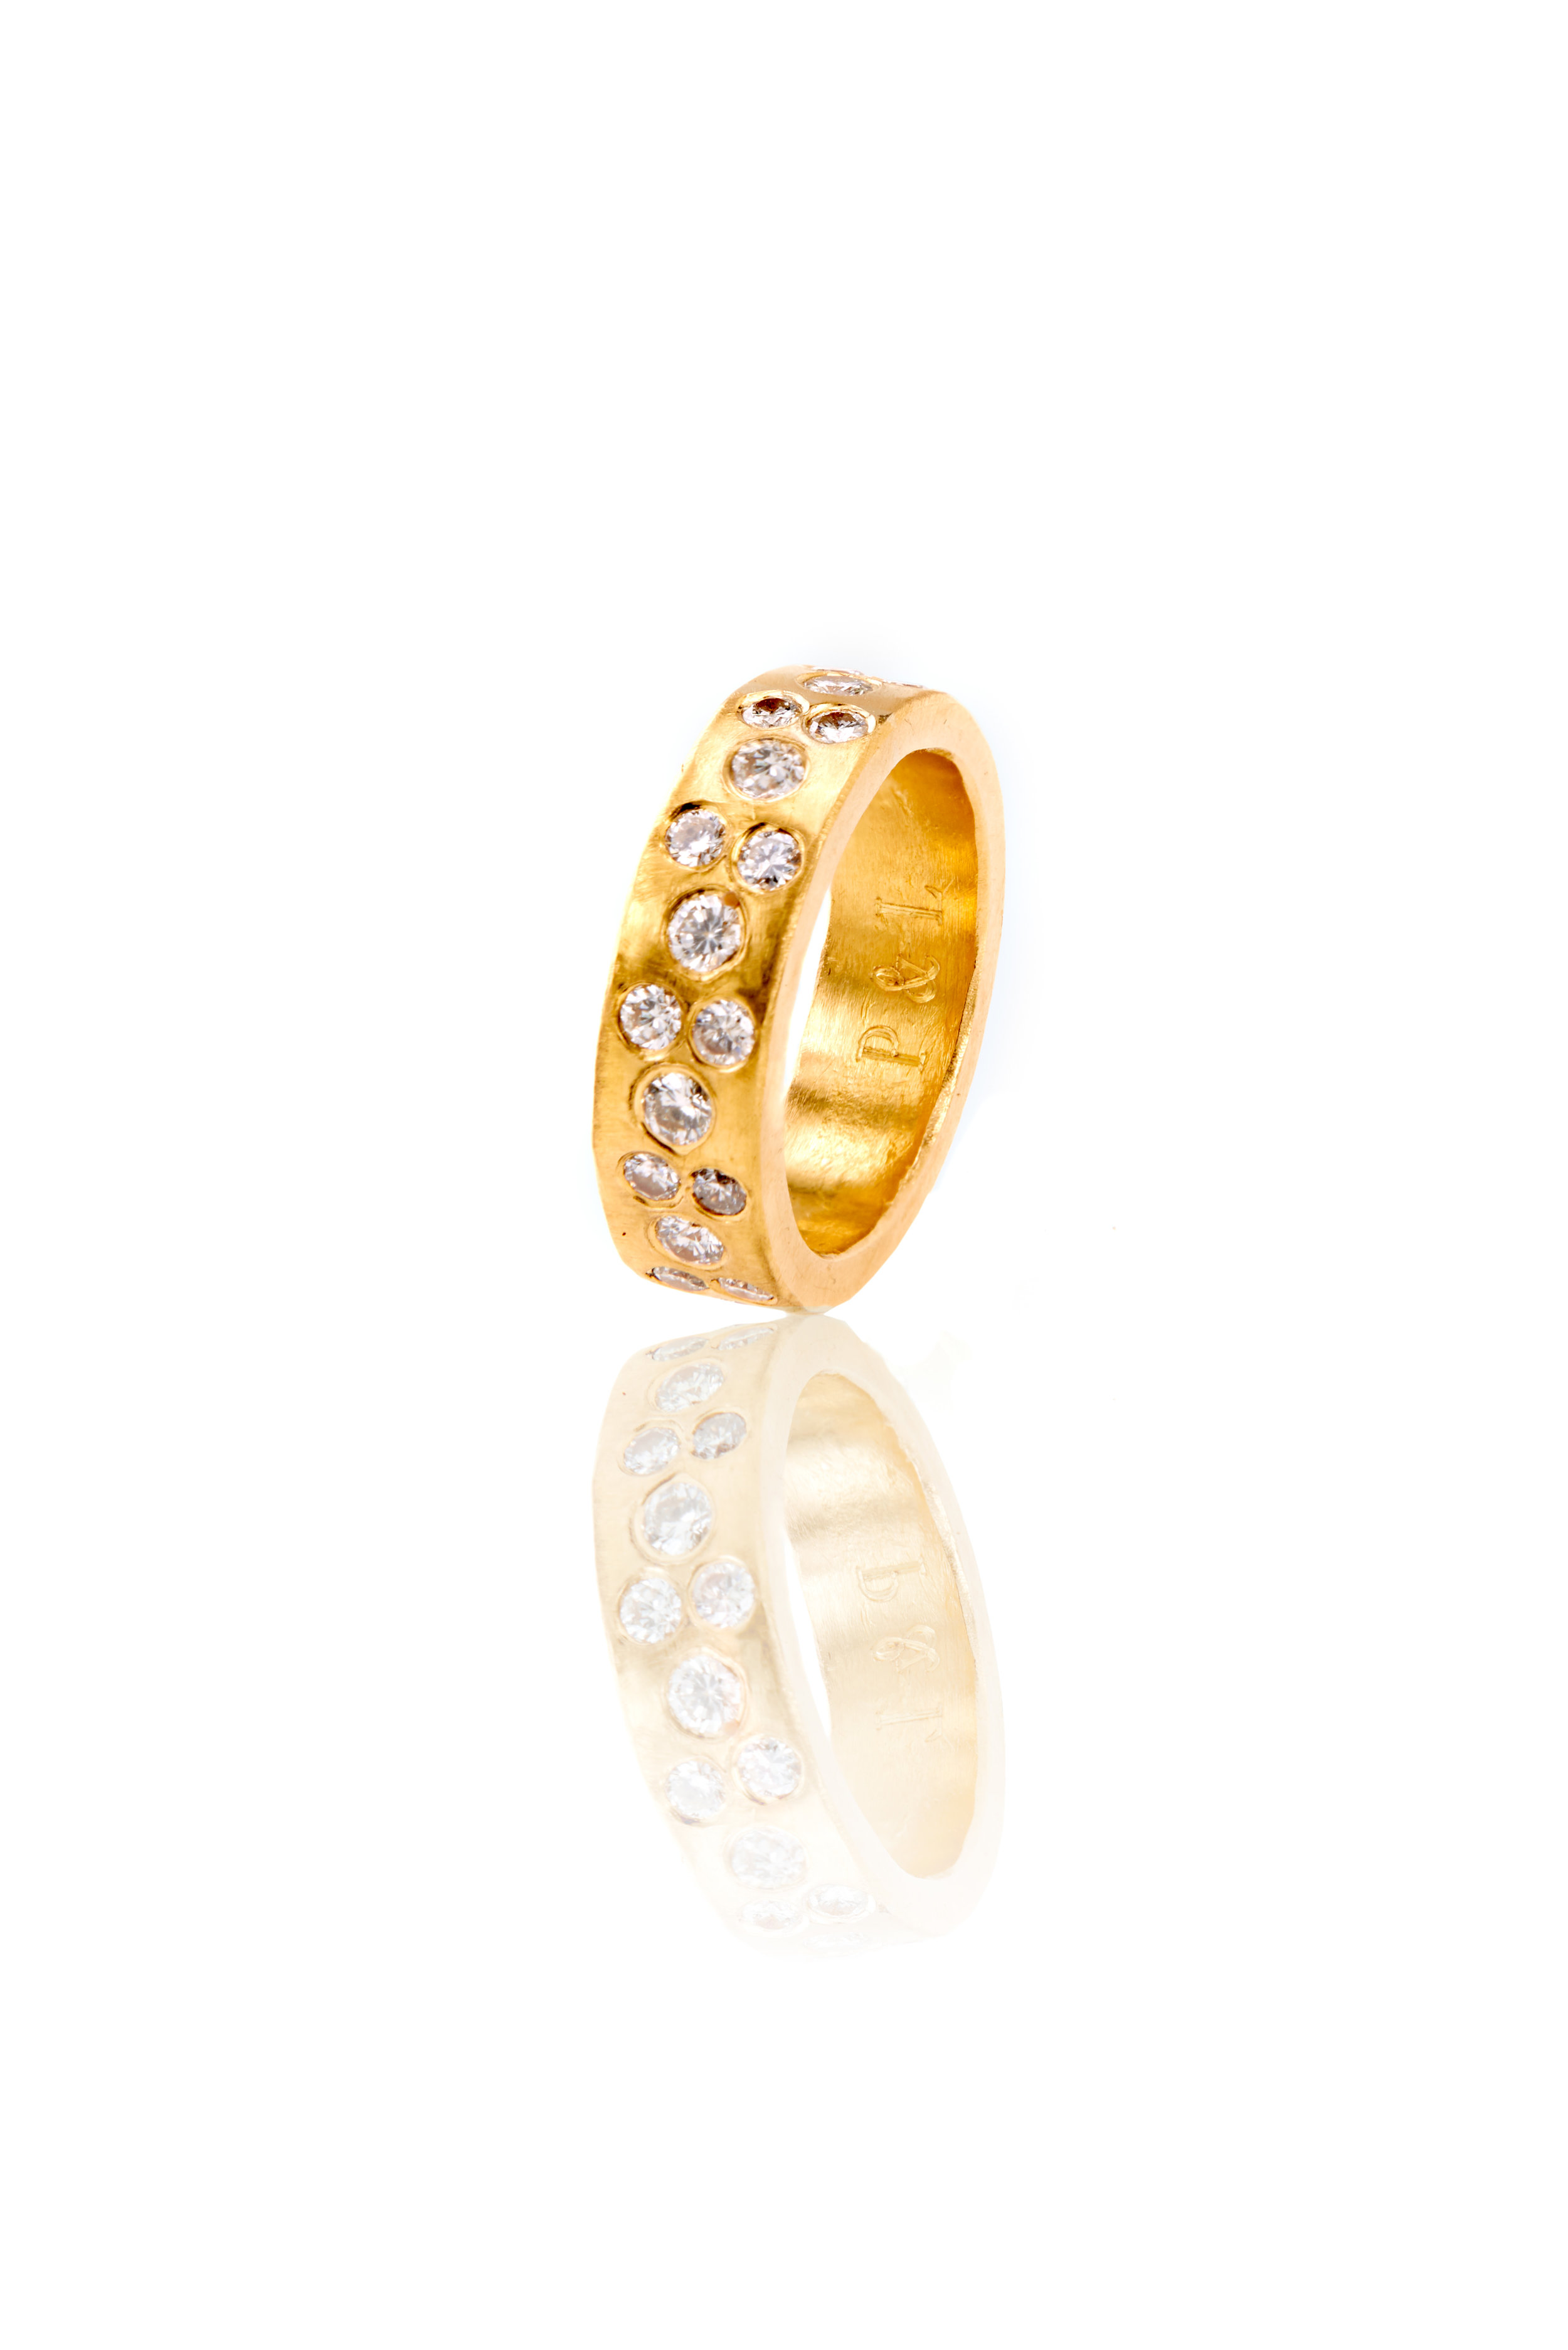 22K gold band with repurposed heirloom diamonds -